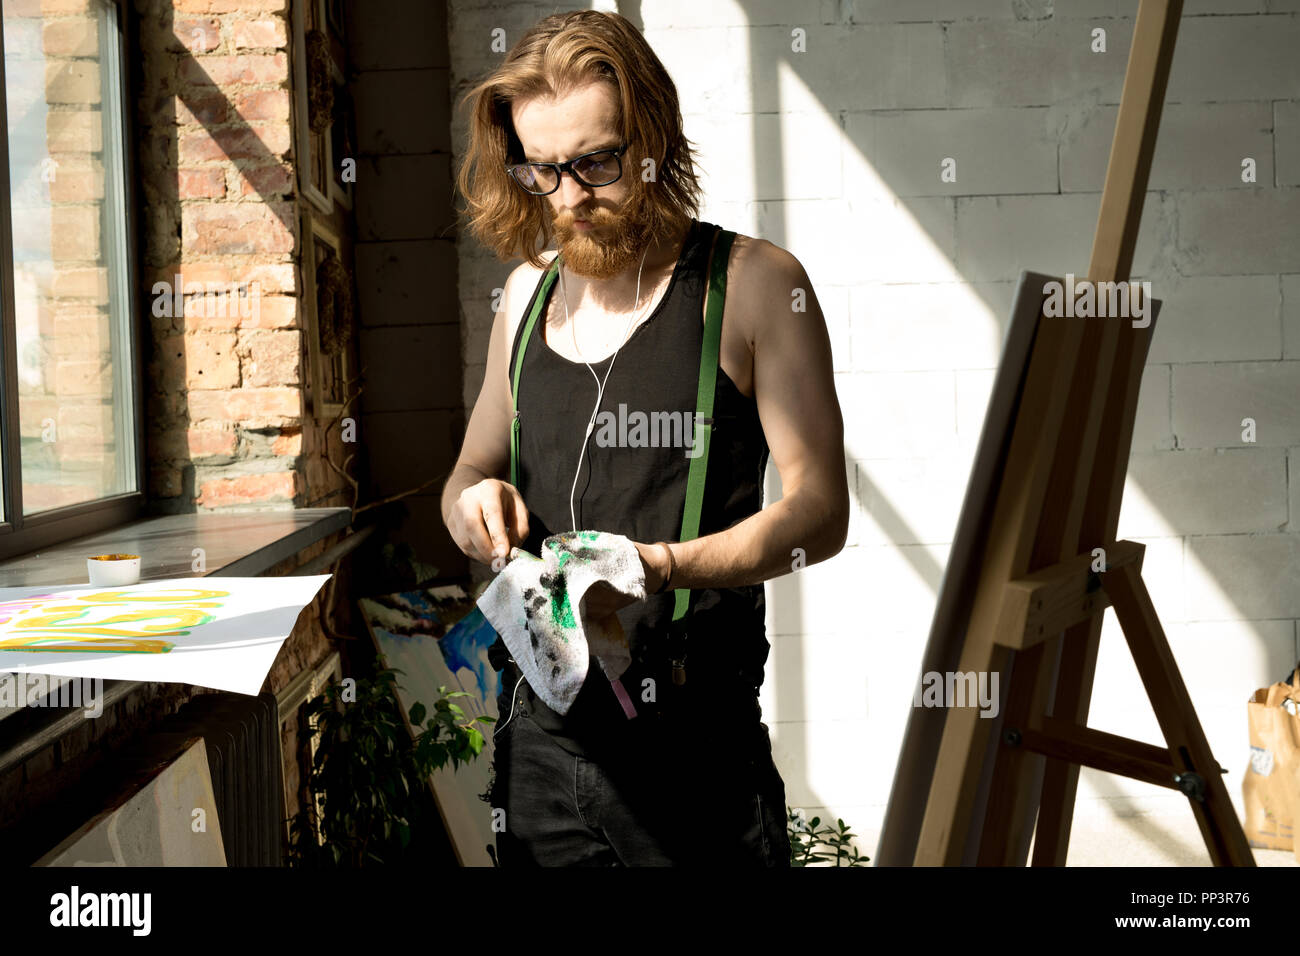 Modern Artist at Work - Stock Image